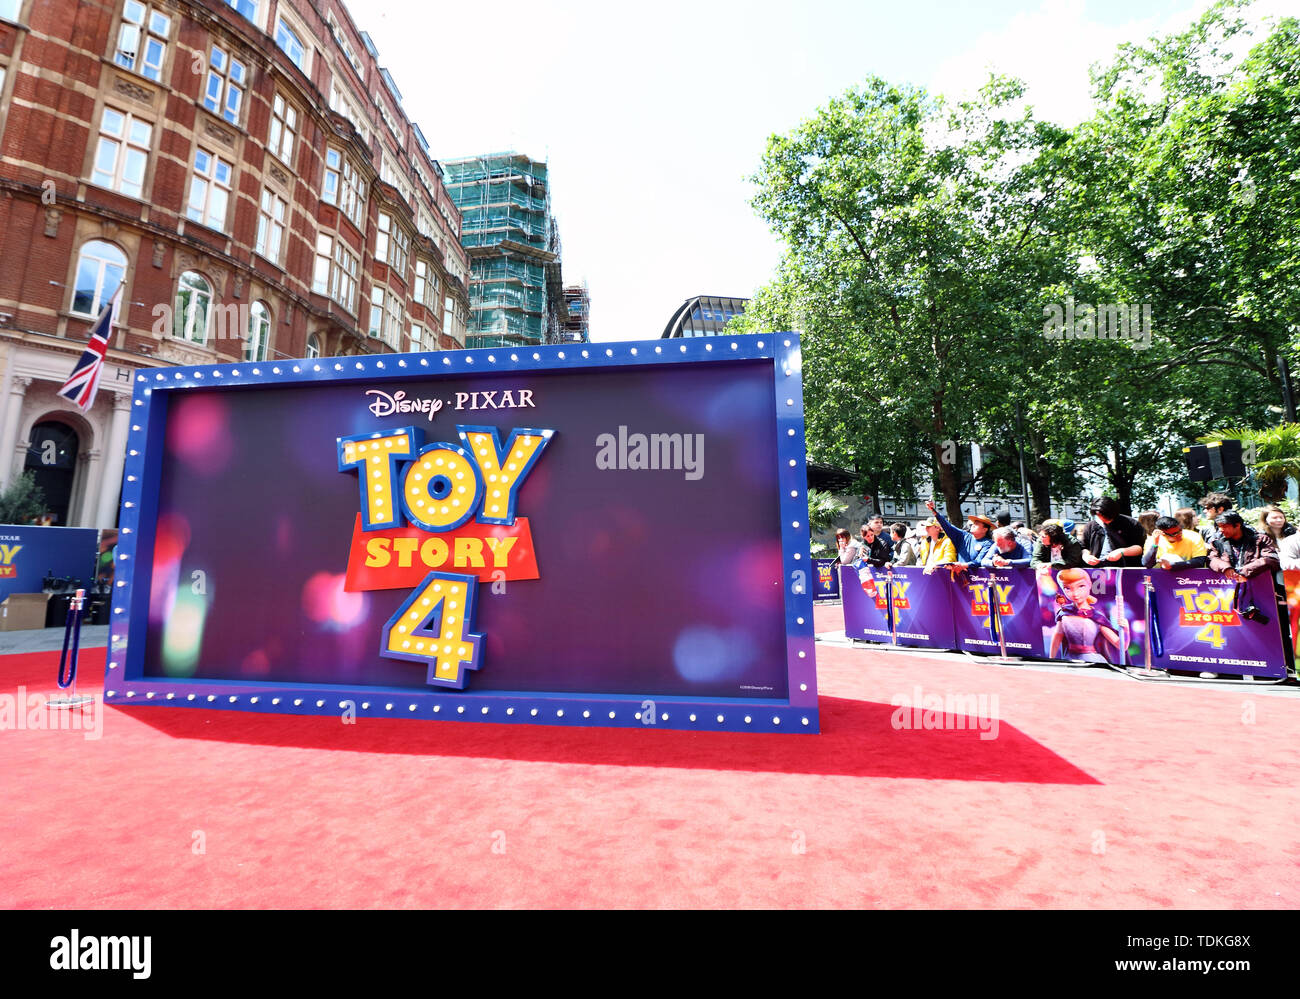 London, UK. 16th June, 2019. Atmosphere at the European Premiere of Toy Story 4 at Odeon Luxe, Leicester Square in London. Credit: SOPA Images Limited/Alamy Live News - Stock Image